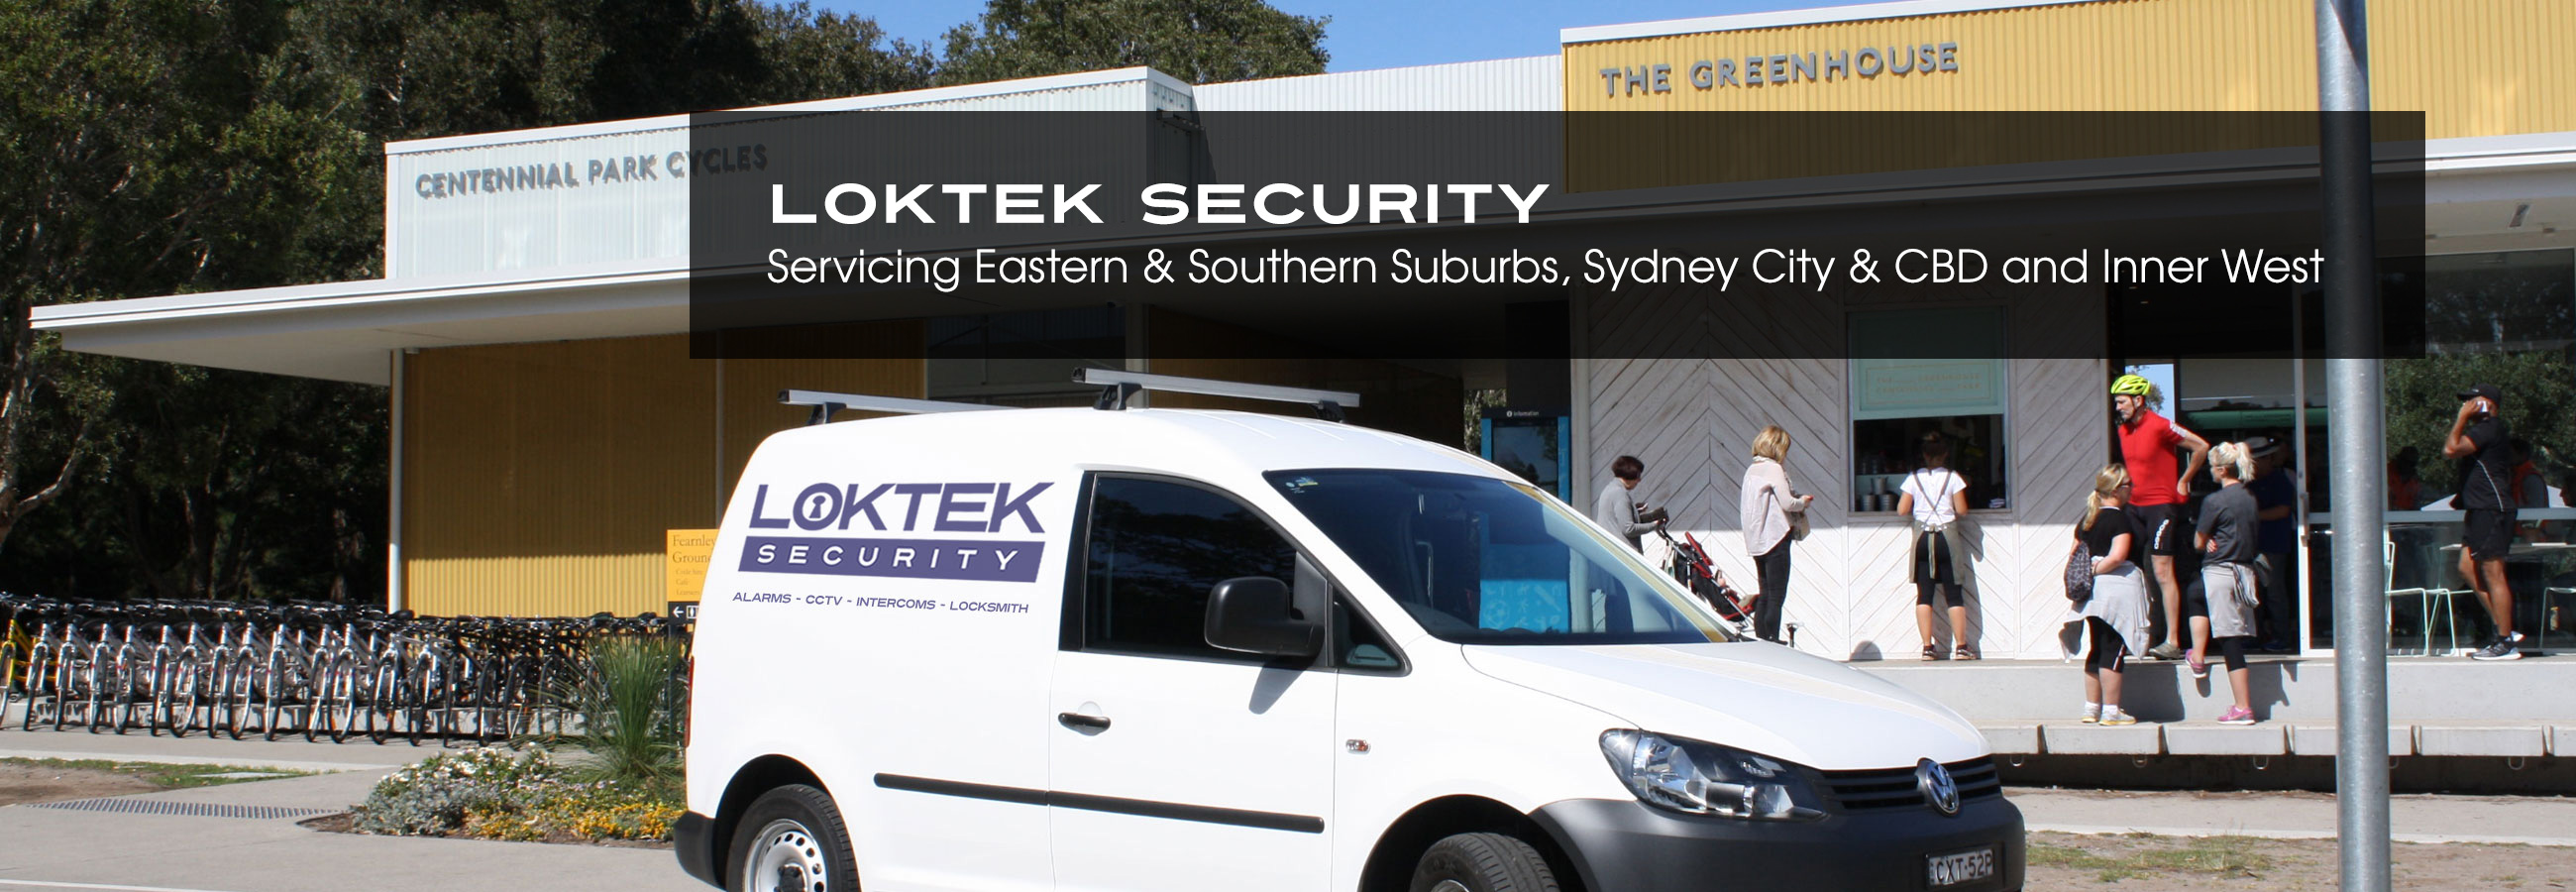 LOKTEK security, 24 hour locksmith Sydney eastern suburbs, ALARMS, CCTV AND INTERCOMS